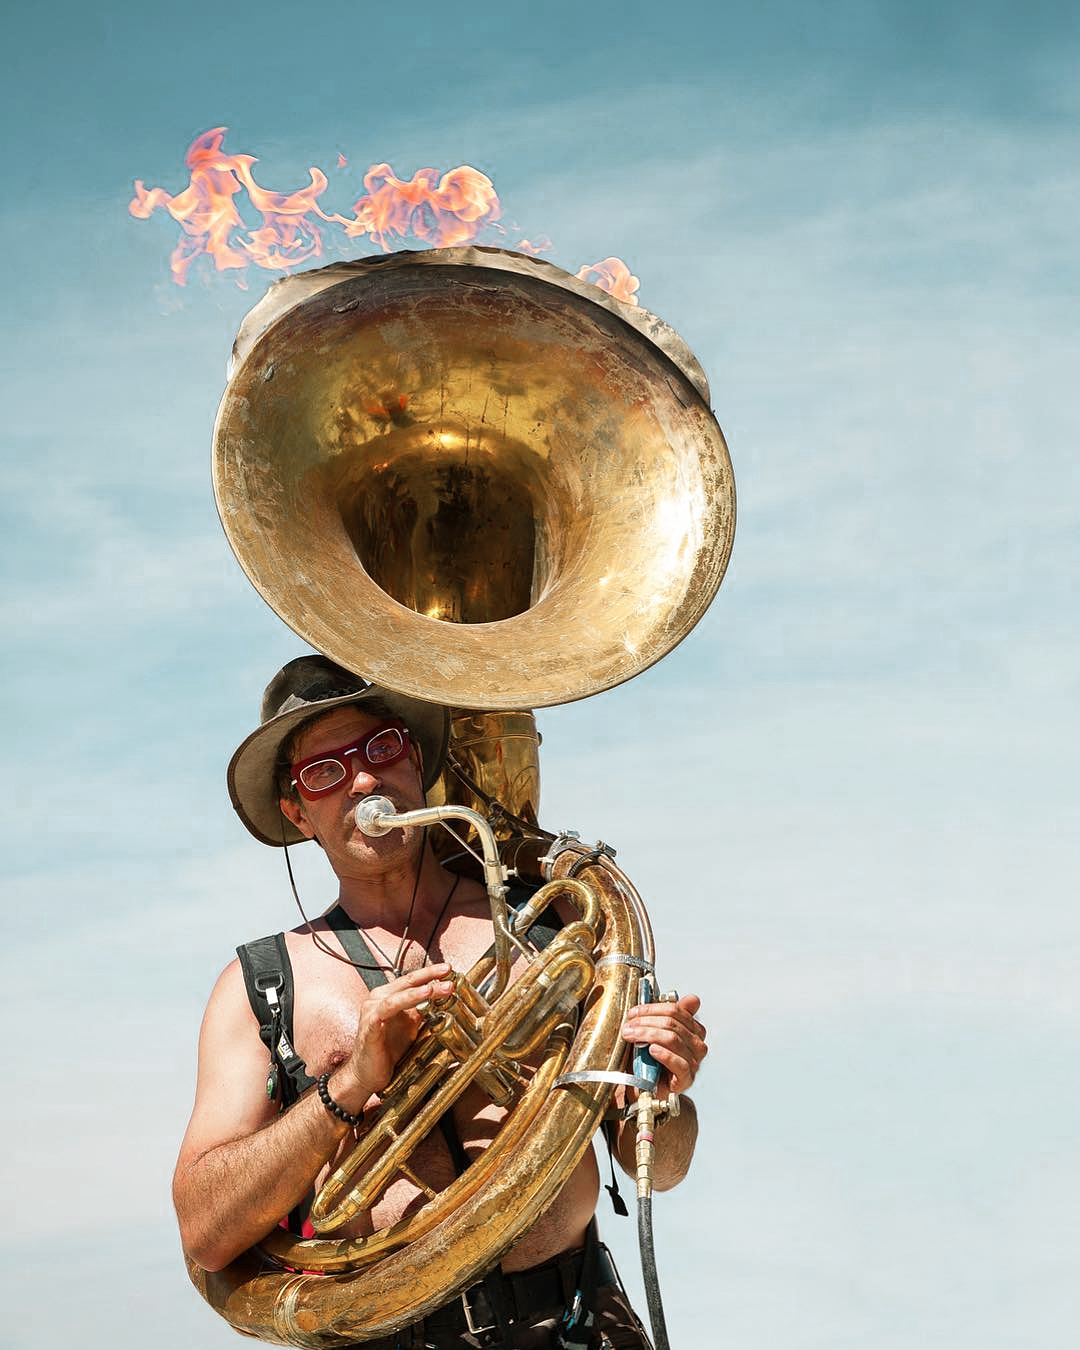 burning man-2018 Фото дня: Burning man-2018 22